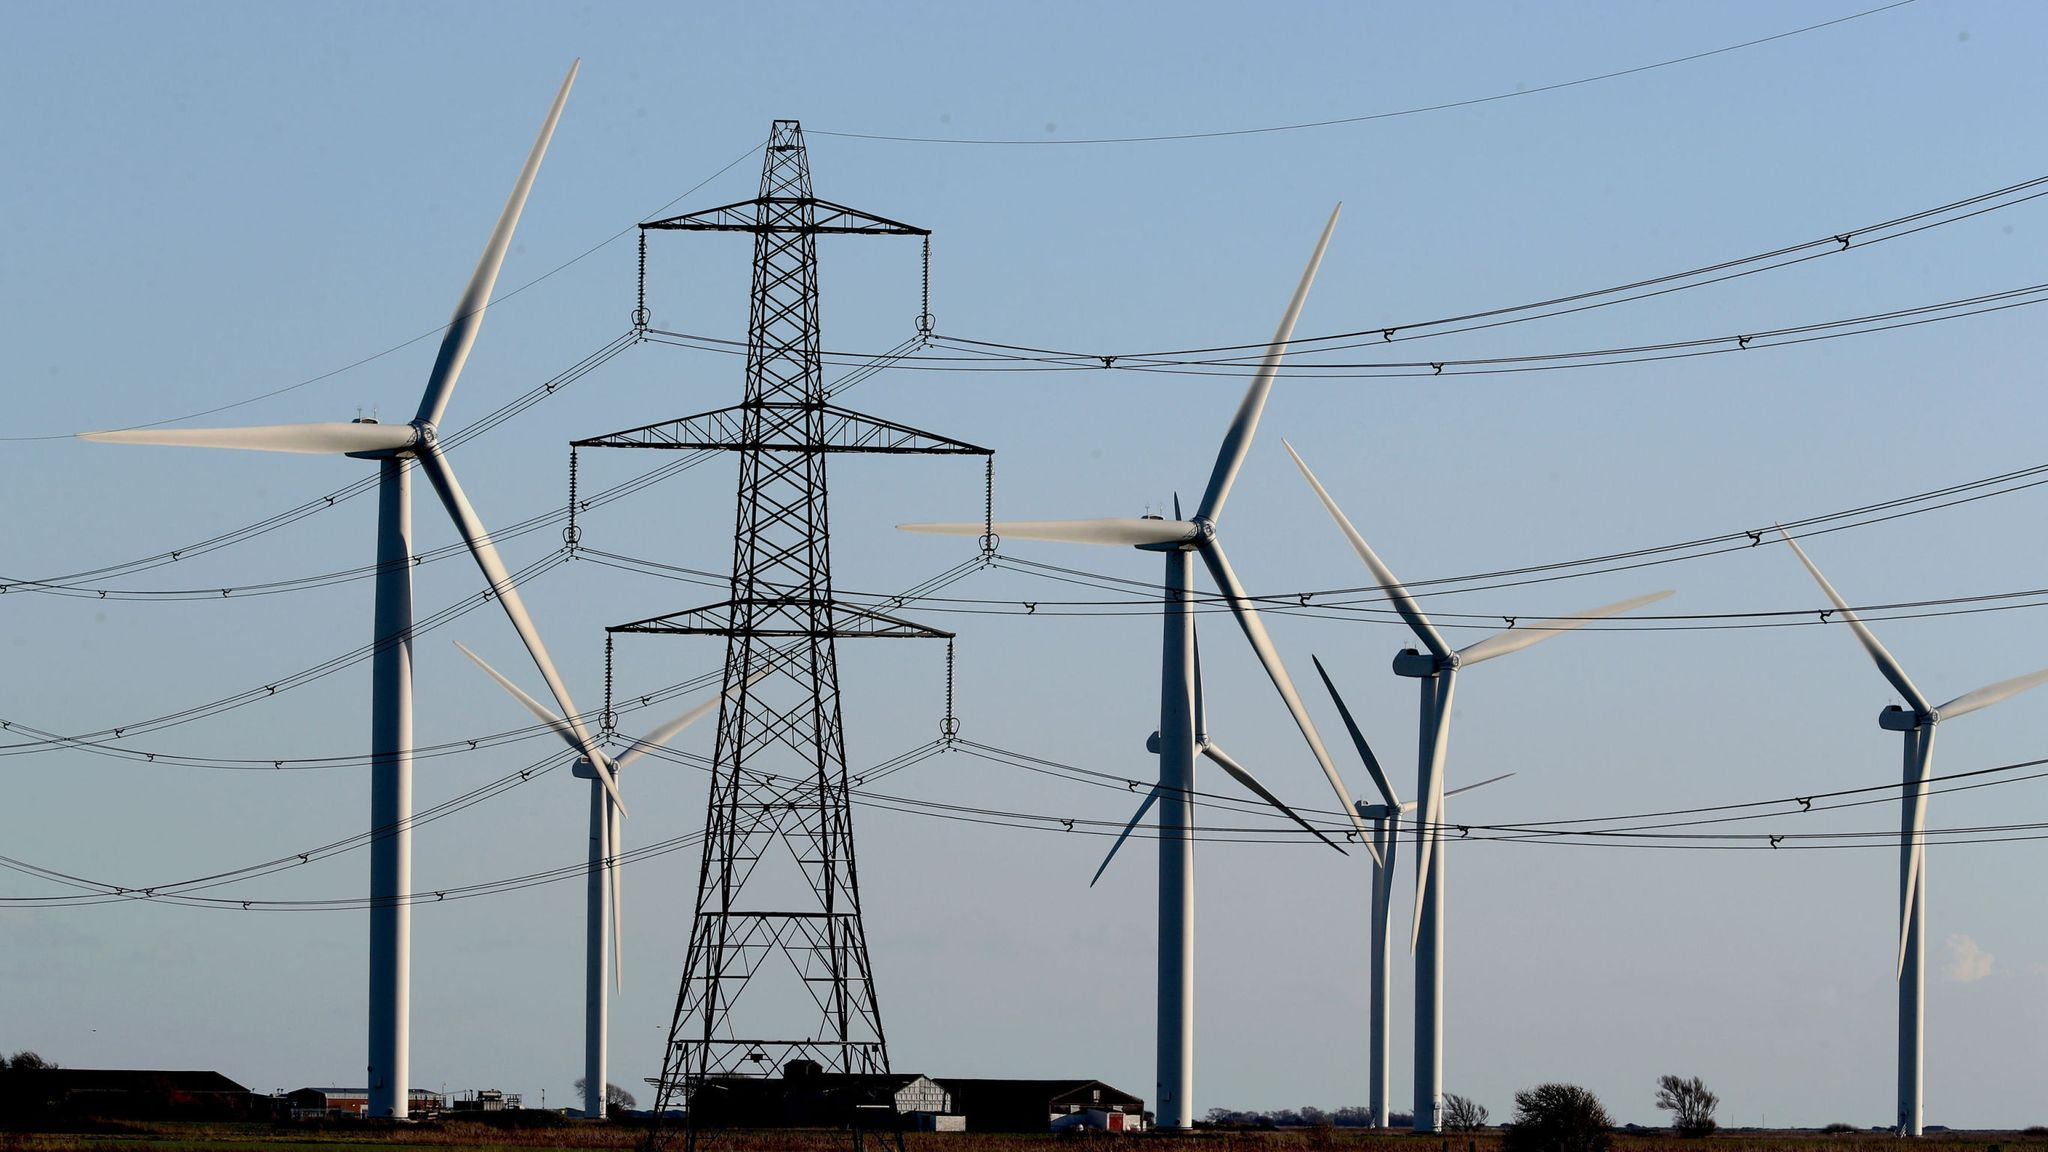 More power came from renewable energy than fossil fuels in UK in 2019